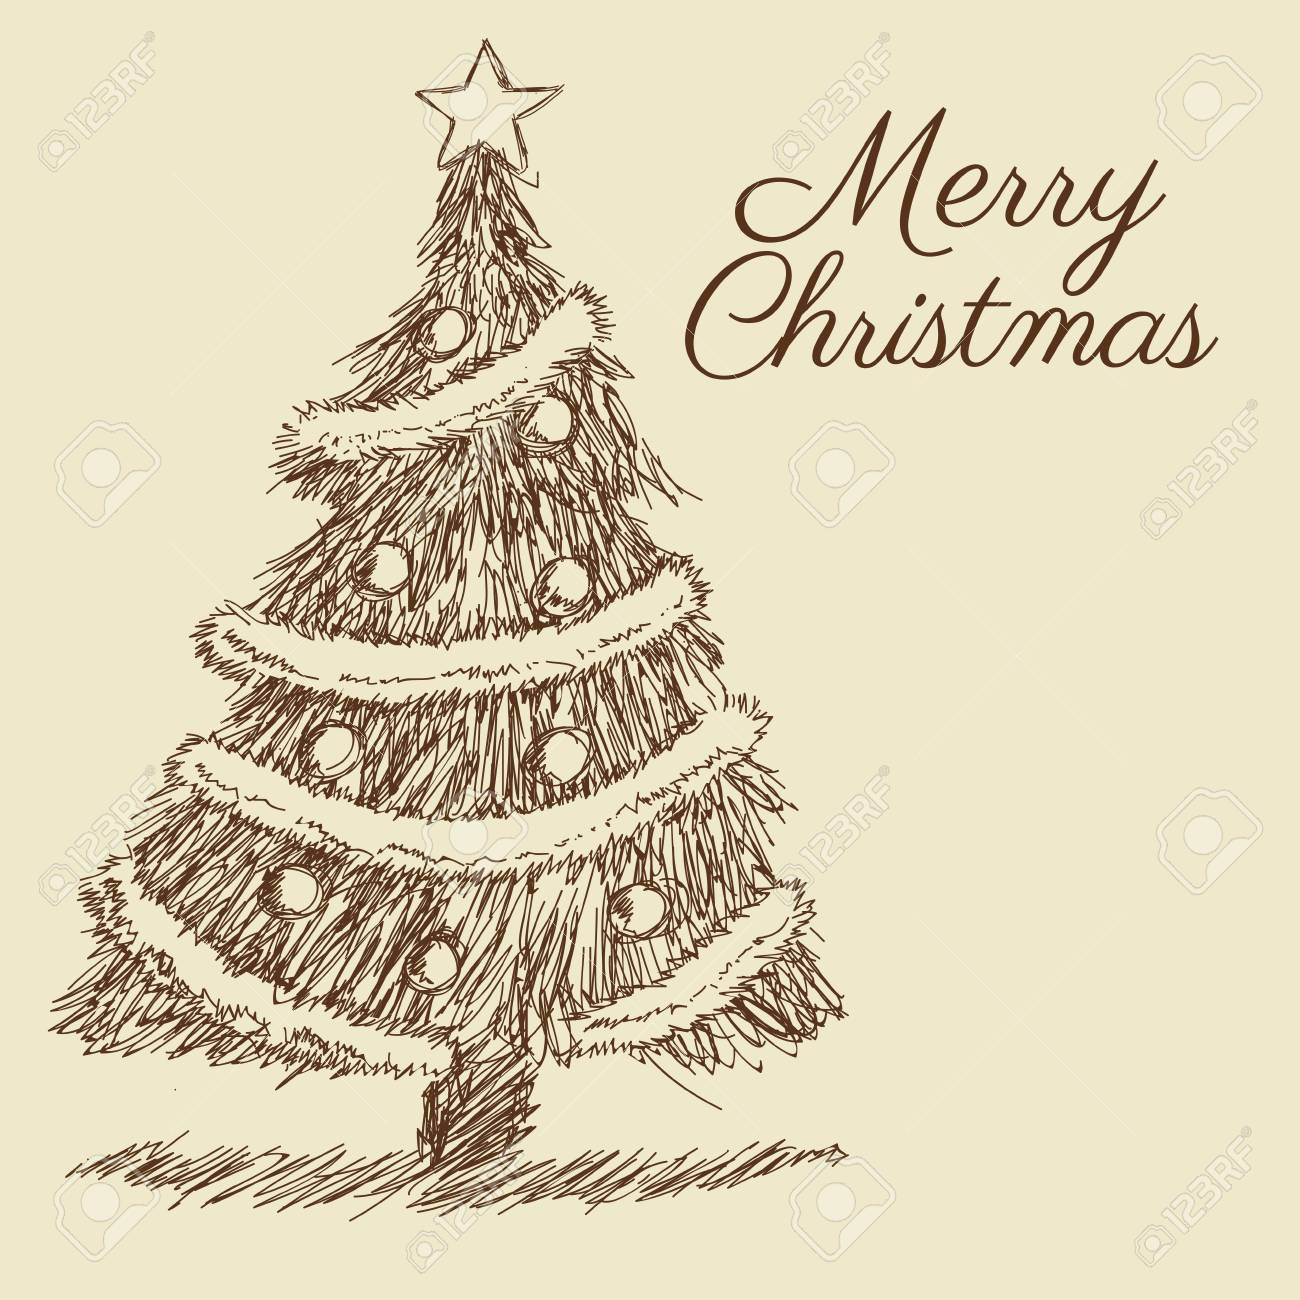 Pine Tree Merry Christmas Decoration Celebration Icon Isolated Draw And Sketch Design Vector Illustration